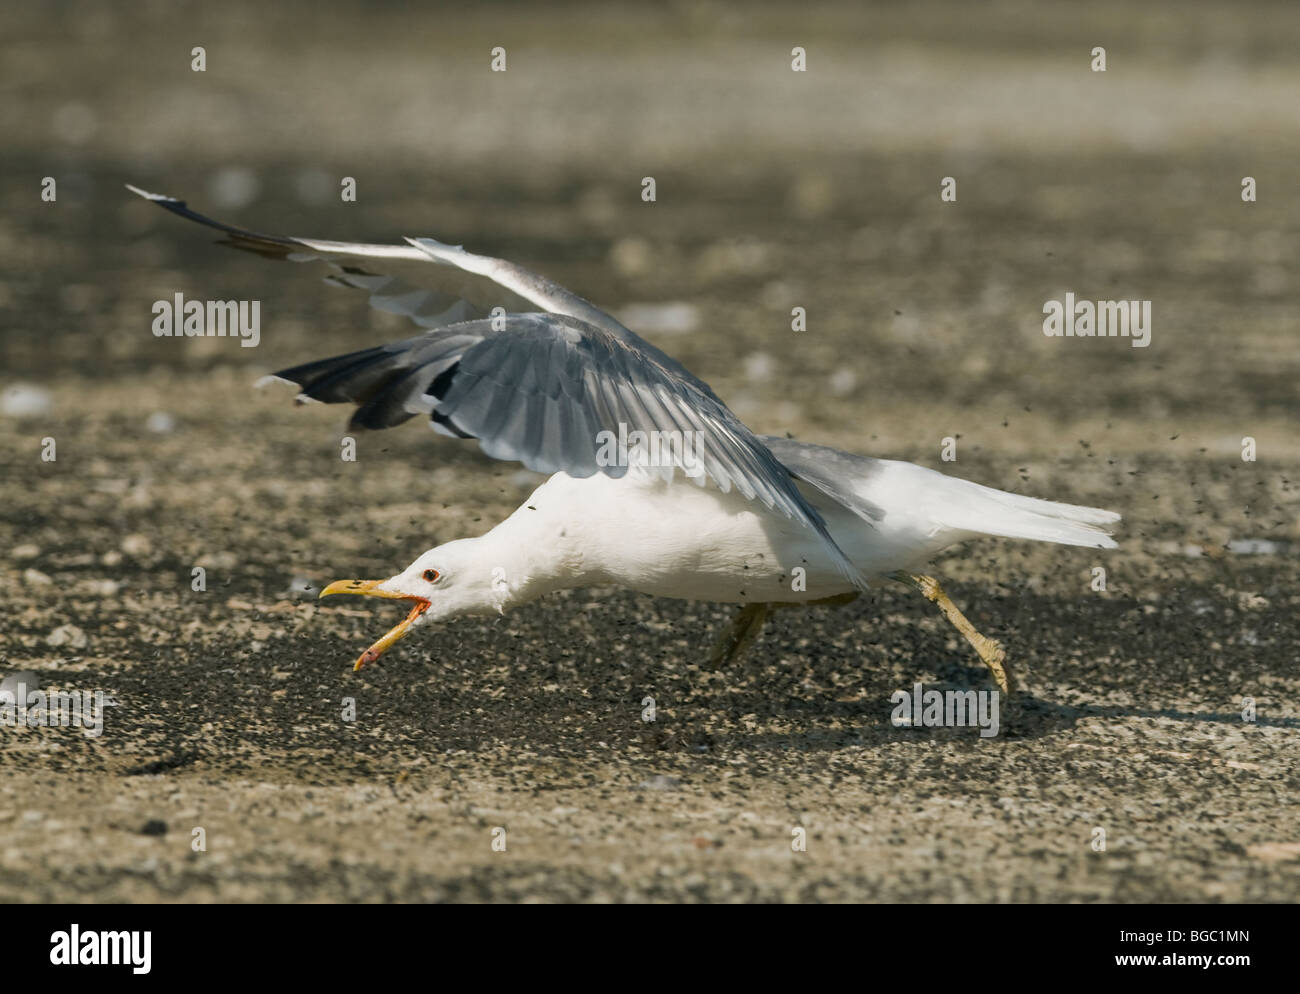 California Gull (Larus californianus) eating Alkali Flies, Mono Lake, California - Stock Image